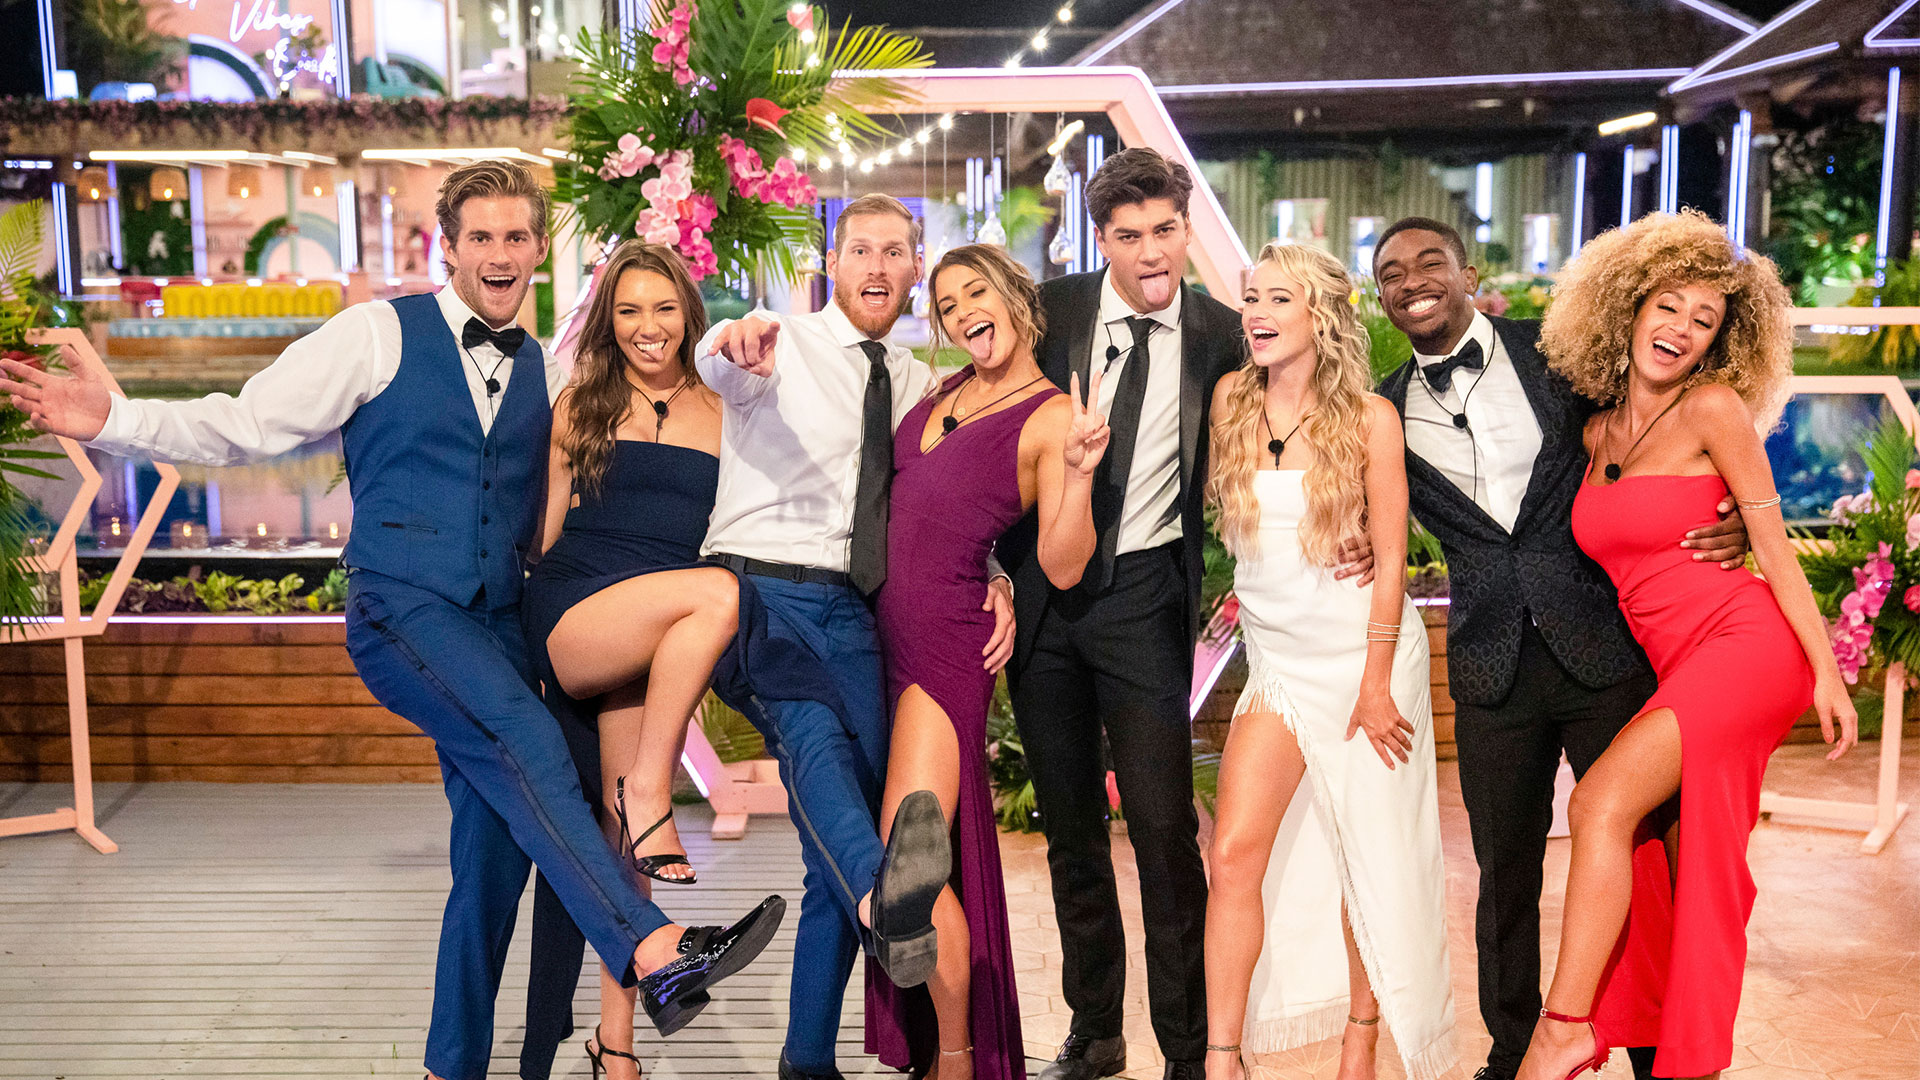 Love Island USA: A Definitive Guide To All The Couples On